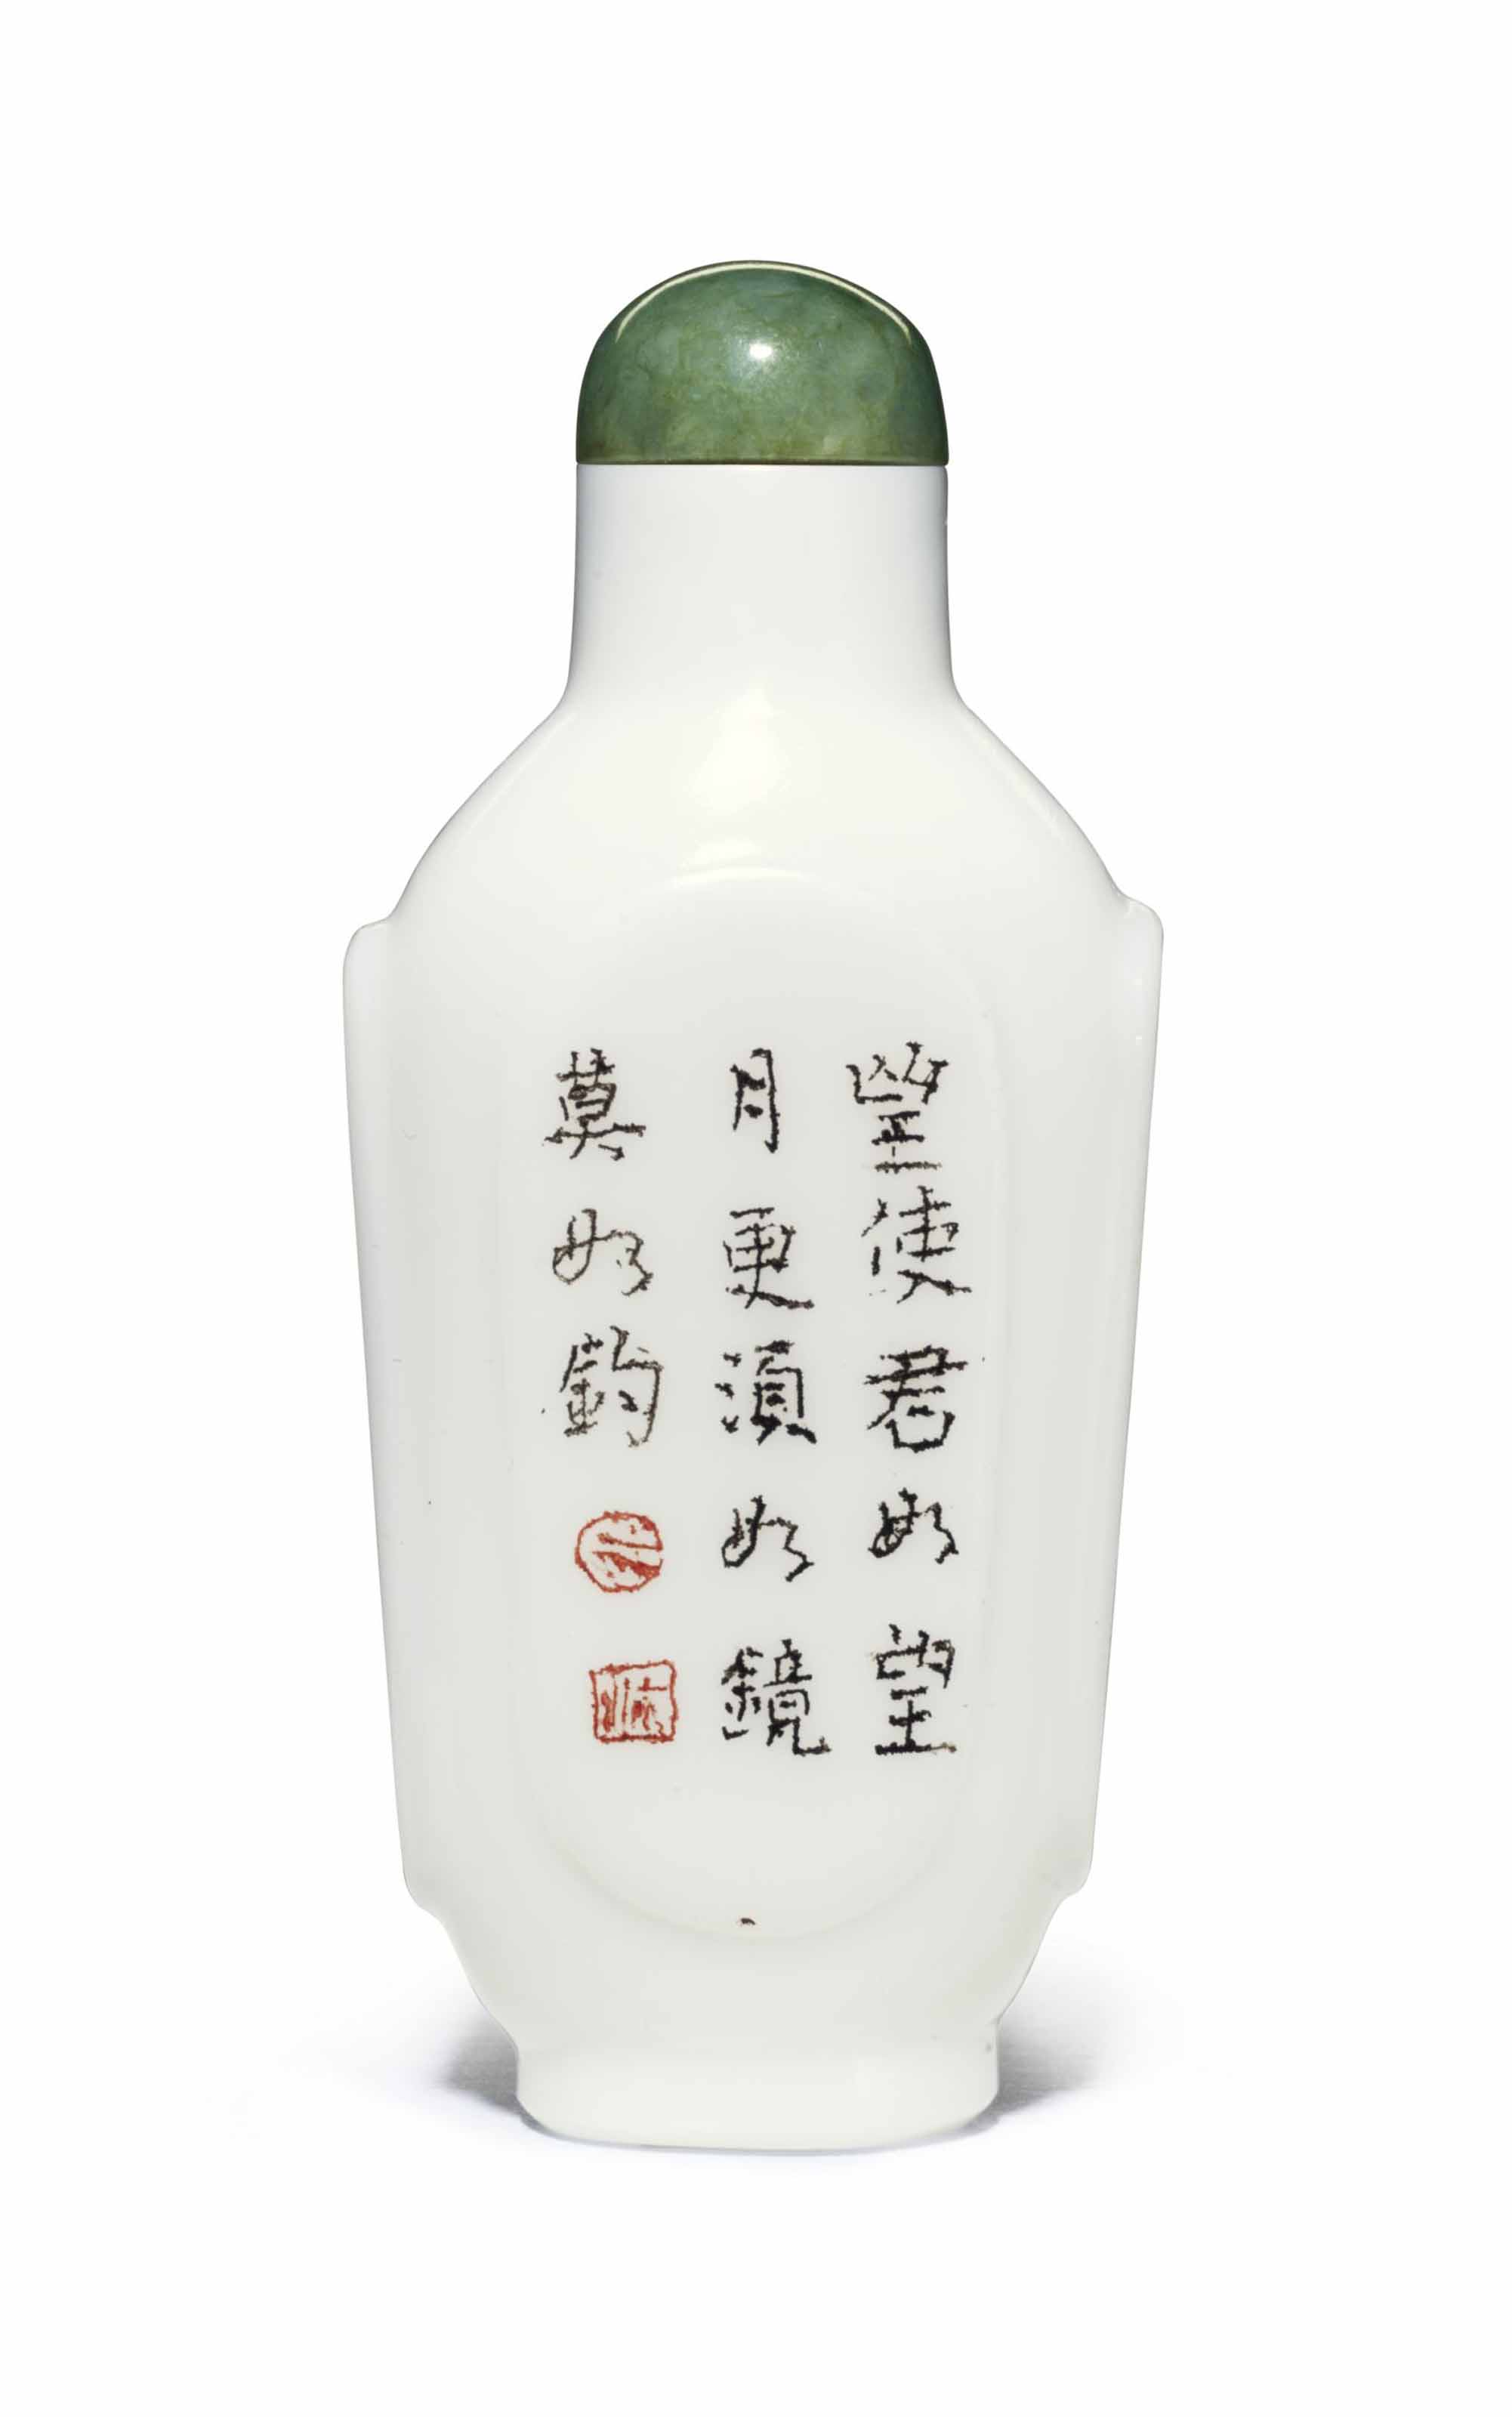 AN INSCRIBED WHITE GLASS SNUFF BOTTLE